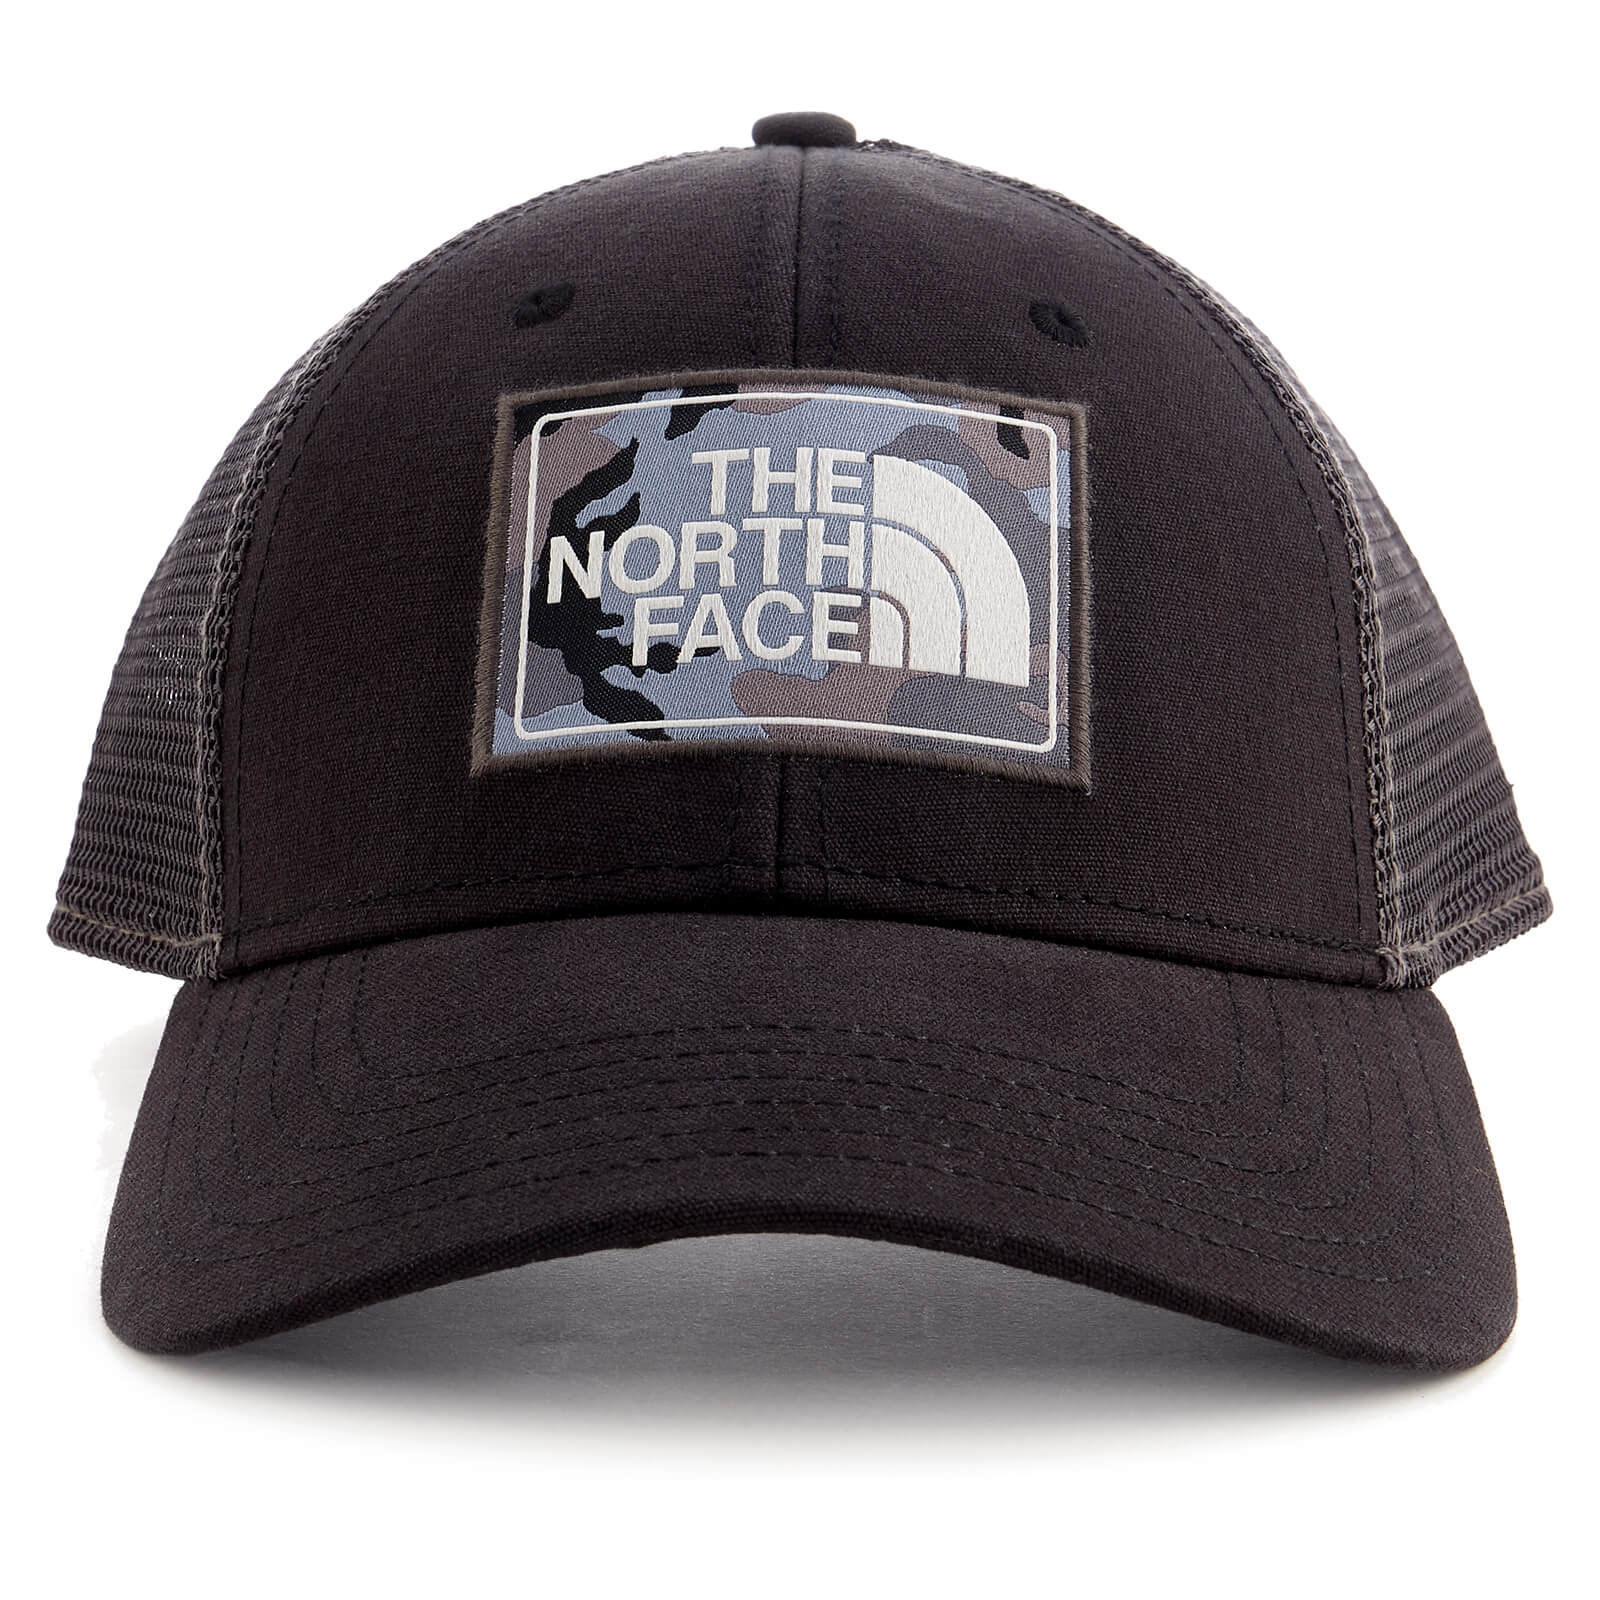 4566484cb3e38 The North Face Mudder Trucker Hat - TNF Black/Asphalt Grey Camo Clothing |  TheHut.com